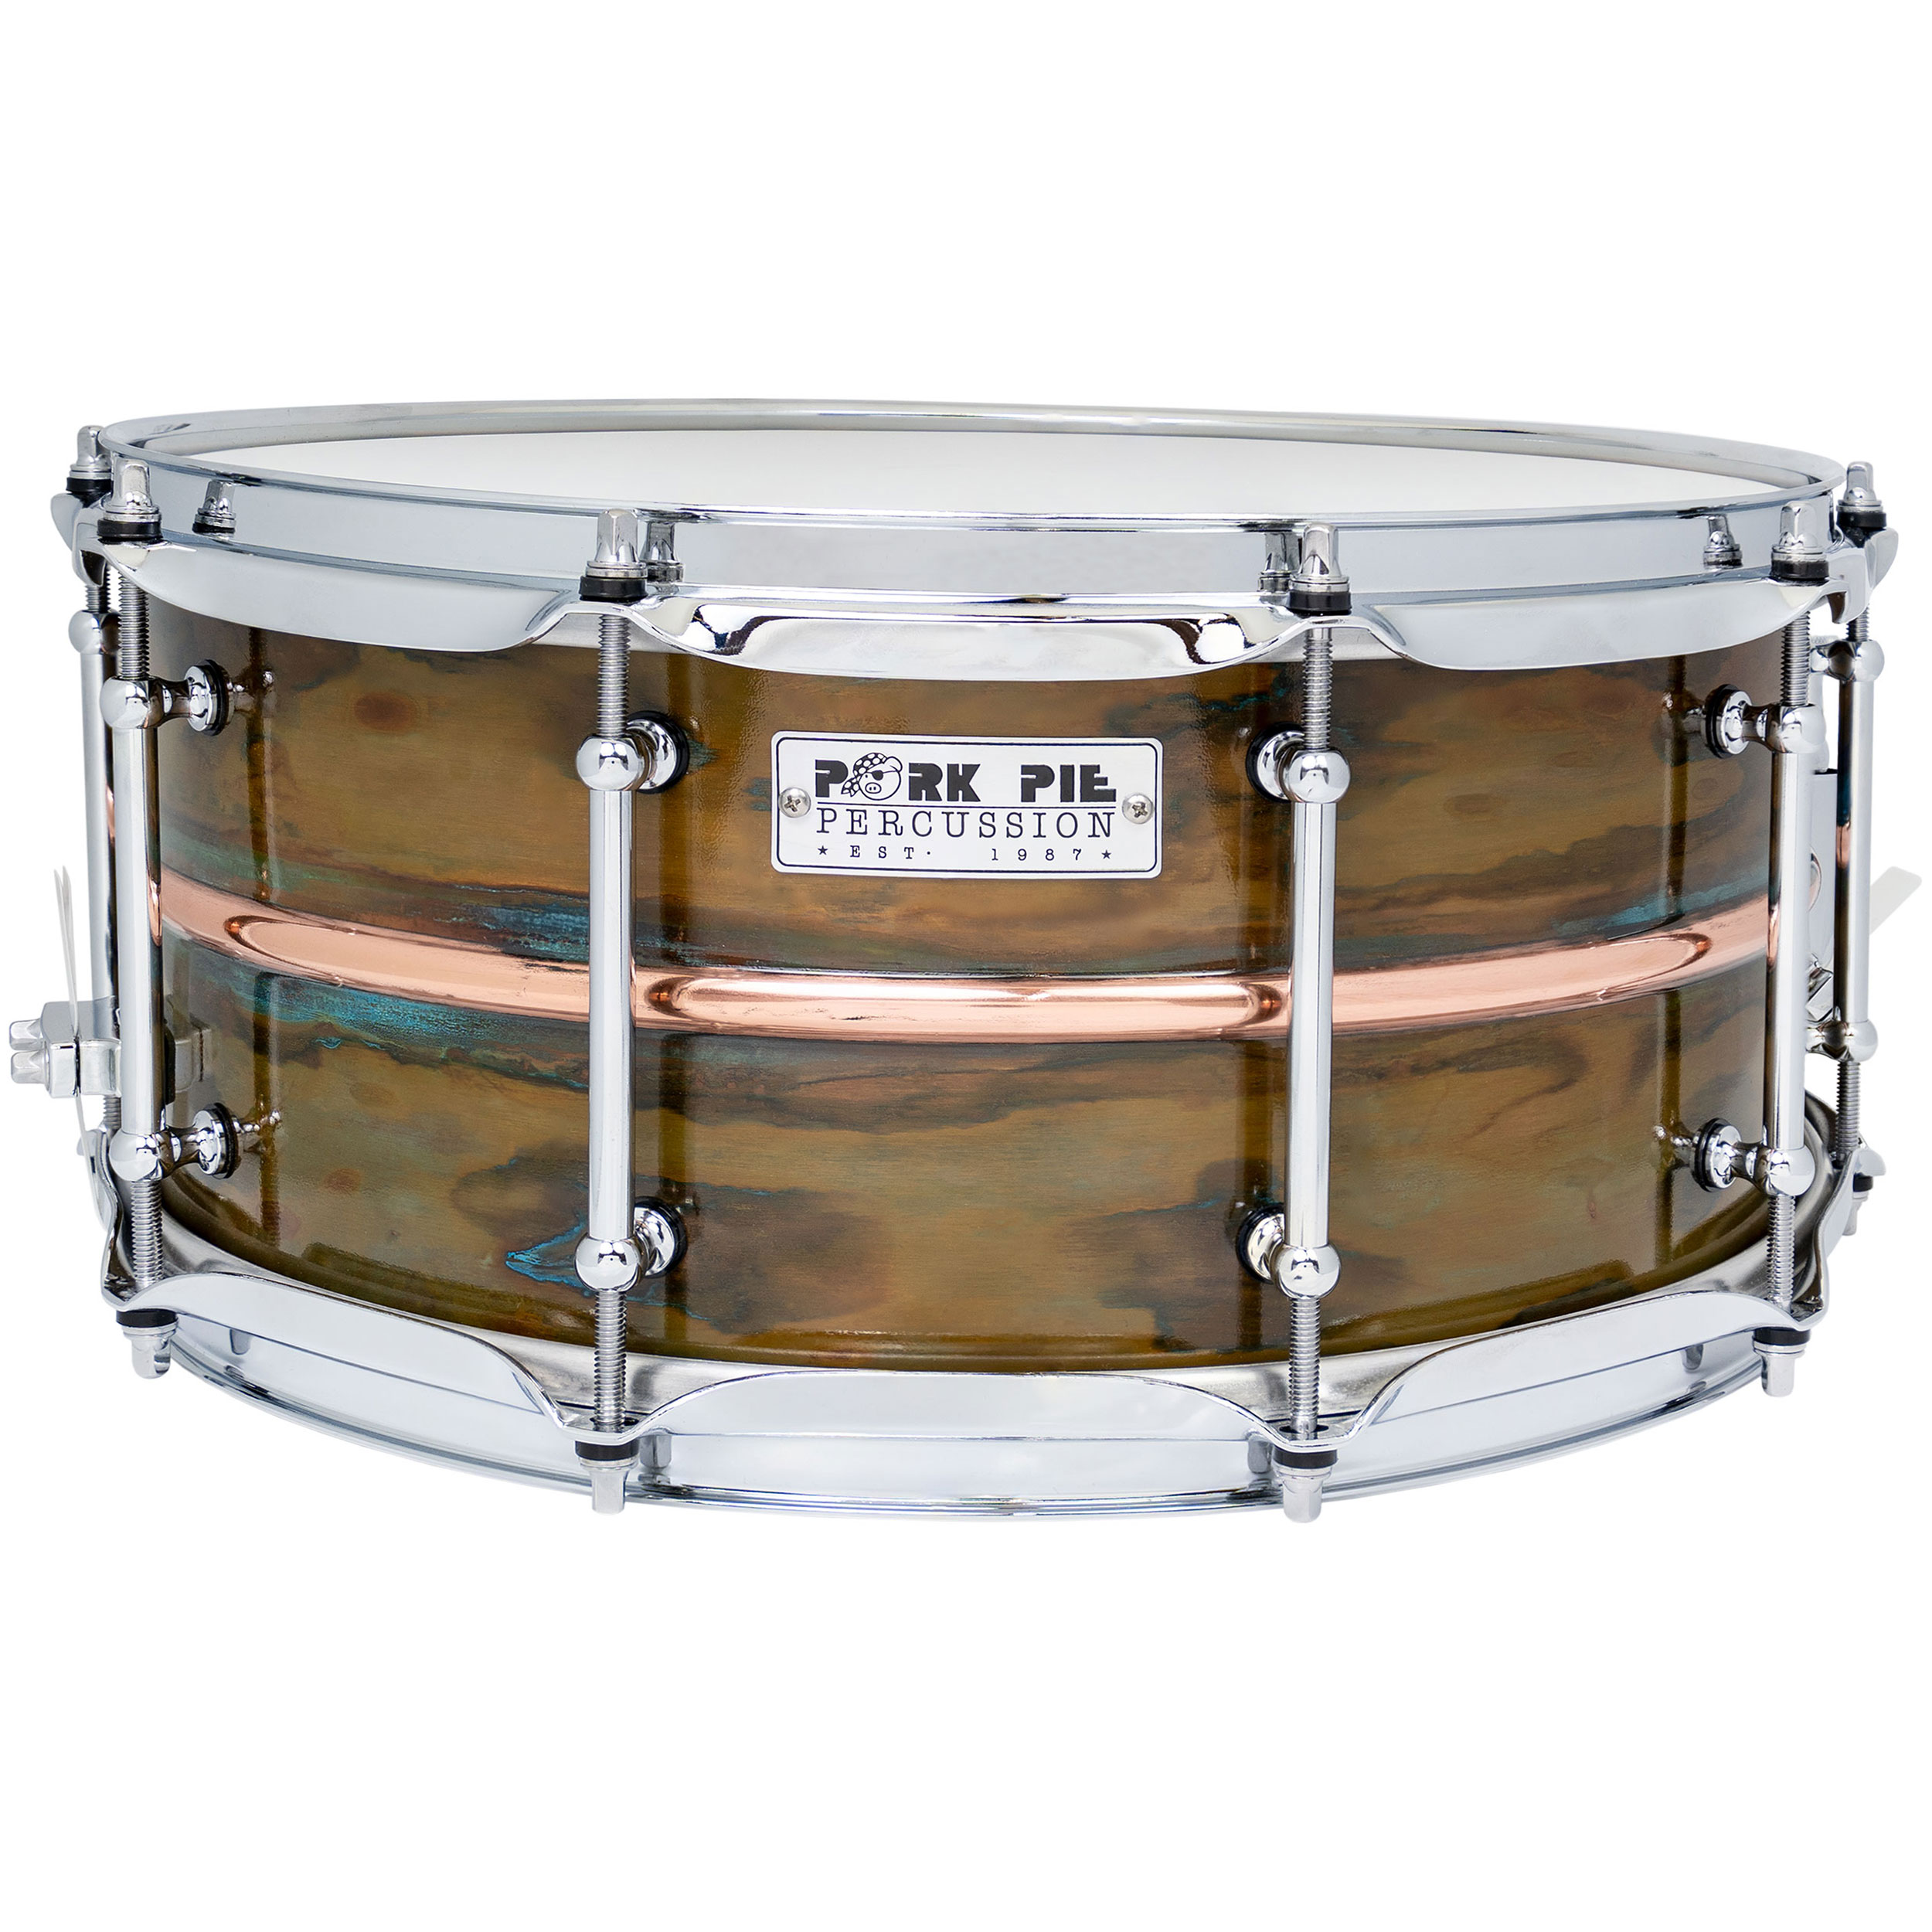 "Pork Pie Percussion 6.5"" x 14"" Copper Patina Snare Drum with Polished Bead"